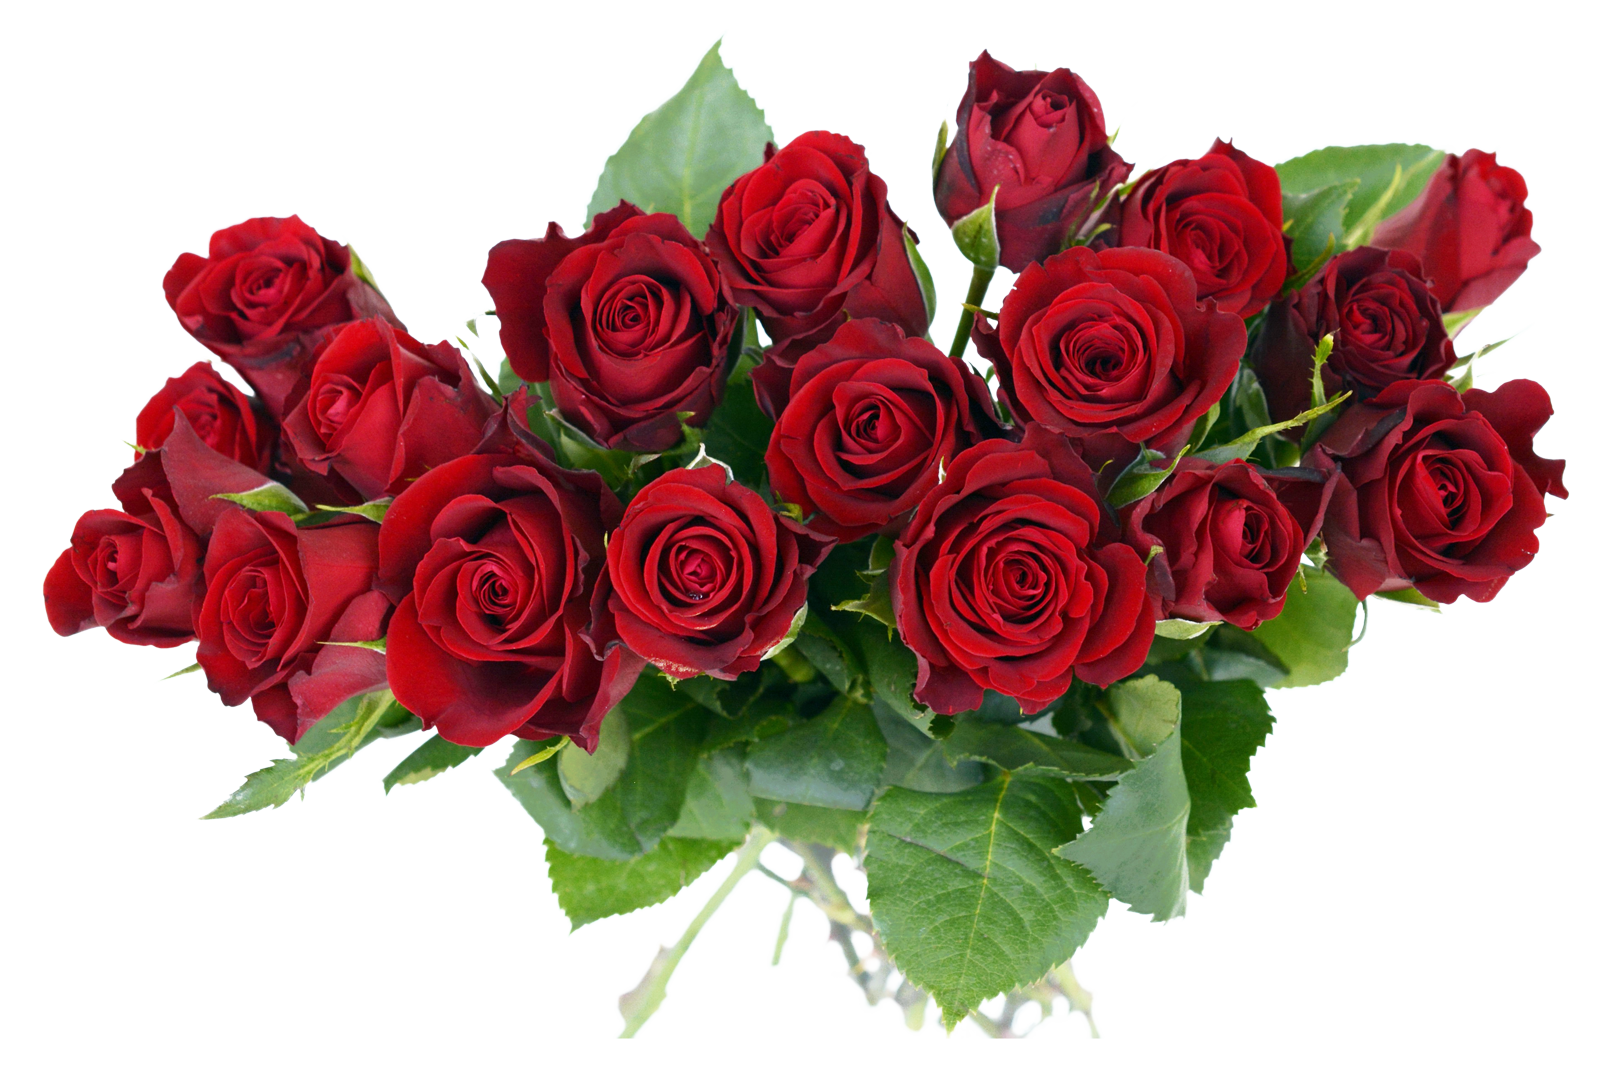 Rose flowers png. Bouquet image purepng free